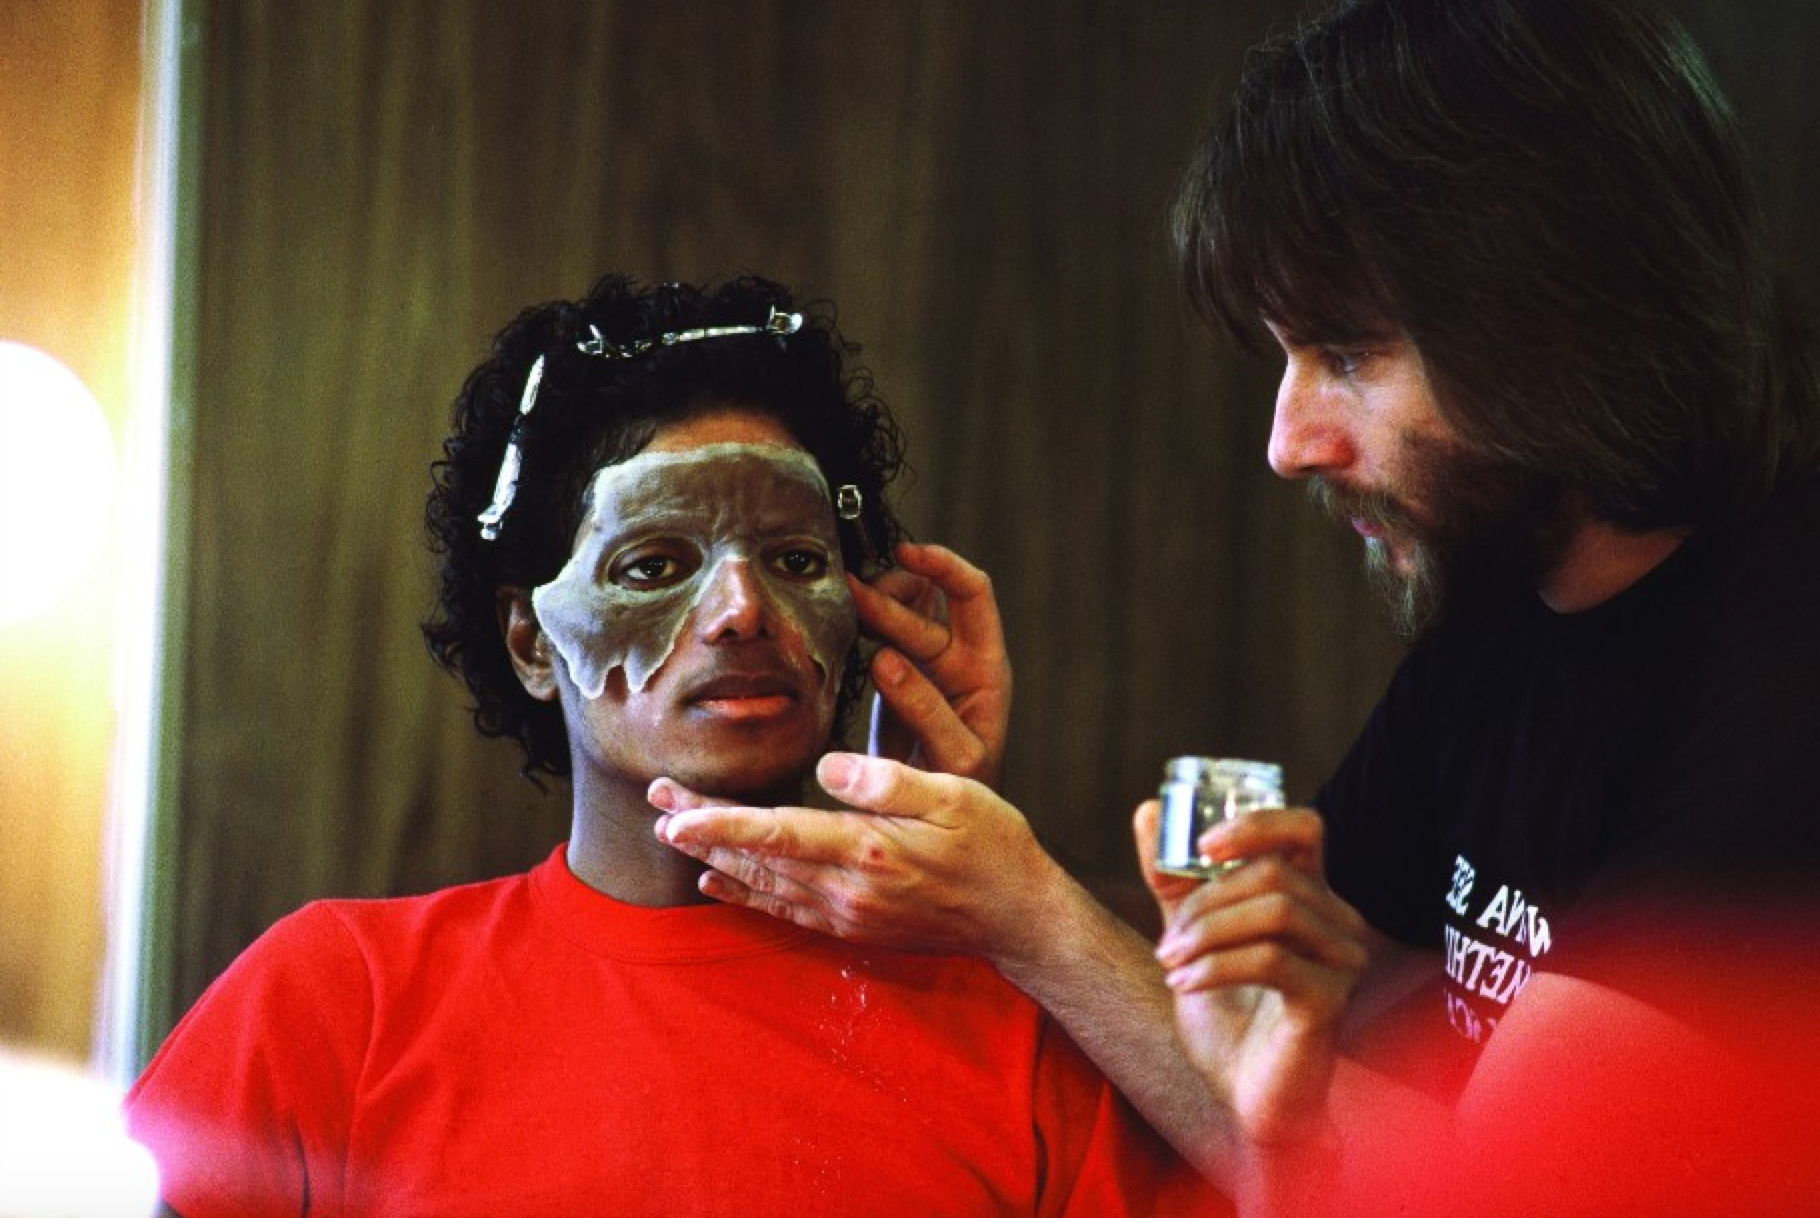 Watch These Behind The Scenes Photos And Video Of Thriller Where Michael Reveals His Favorite Horror Movie I Love Halloween